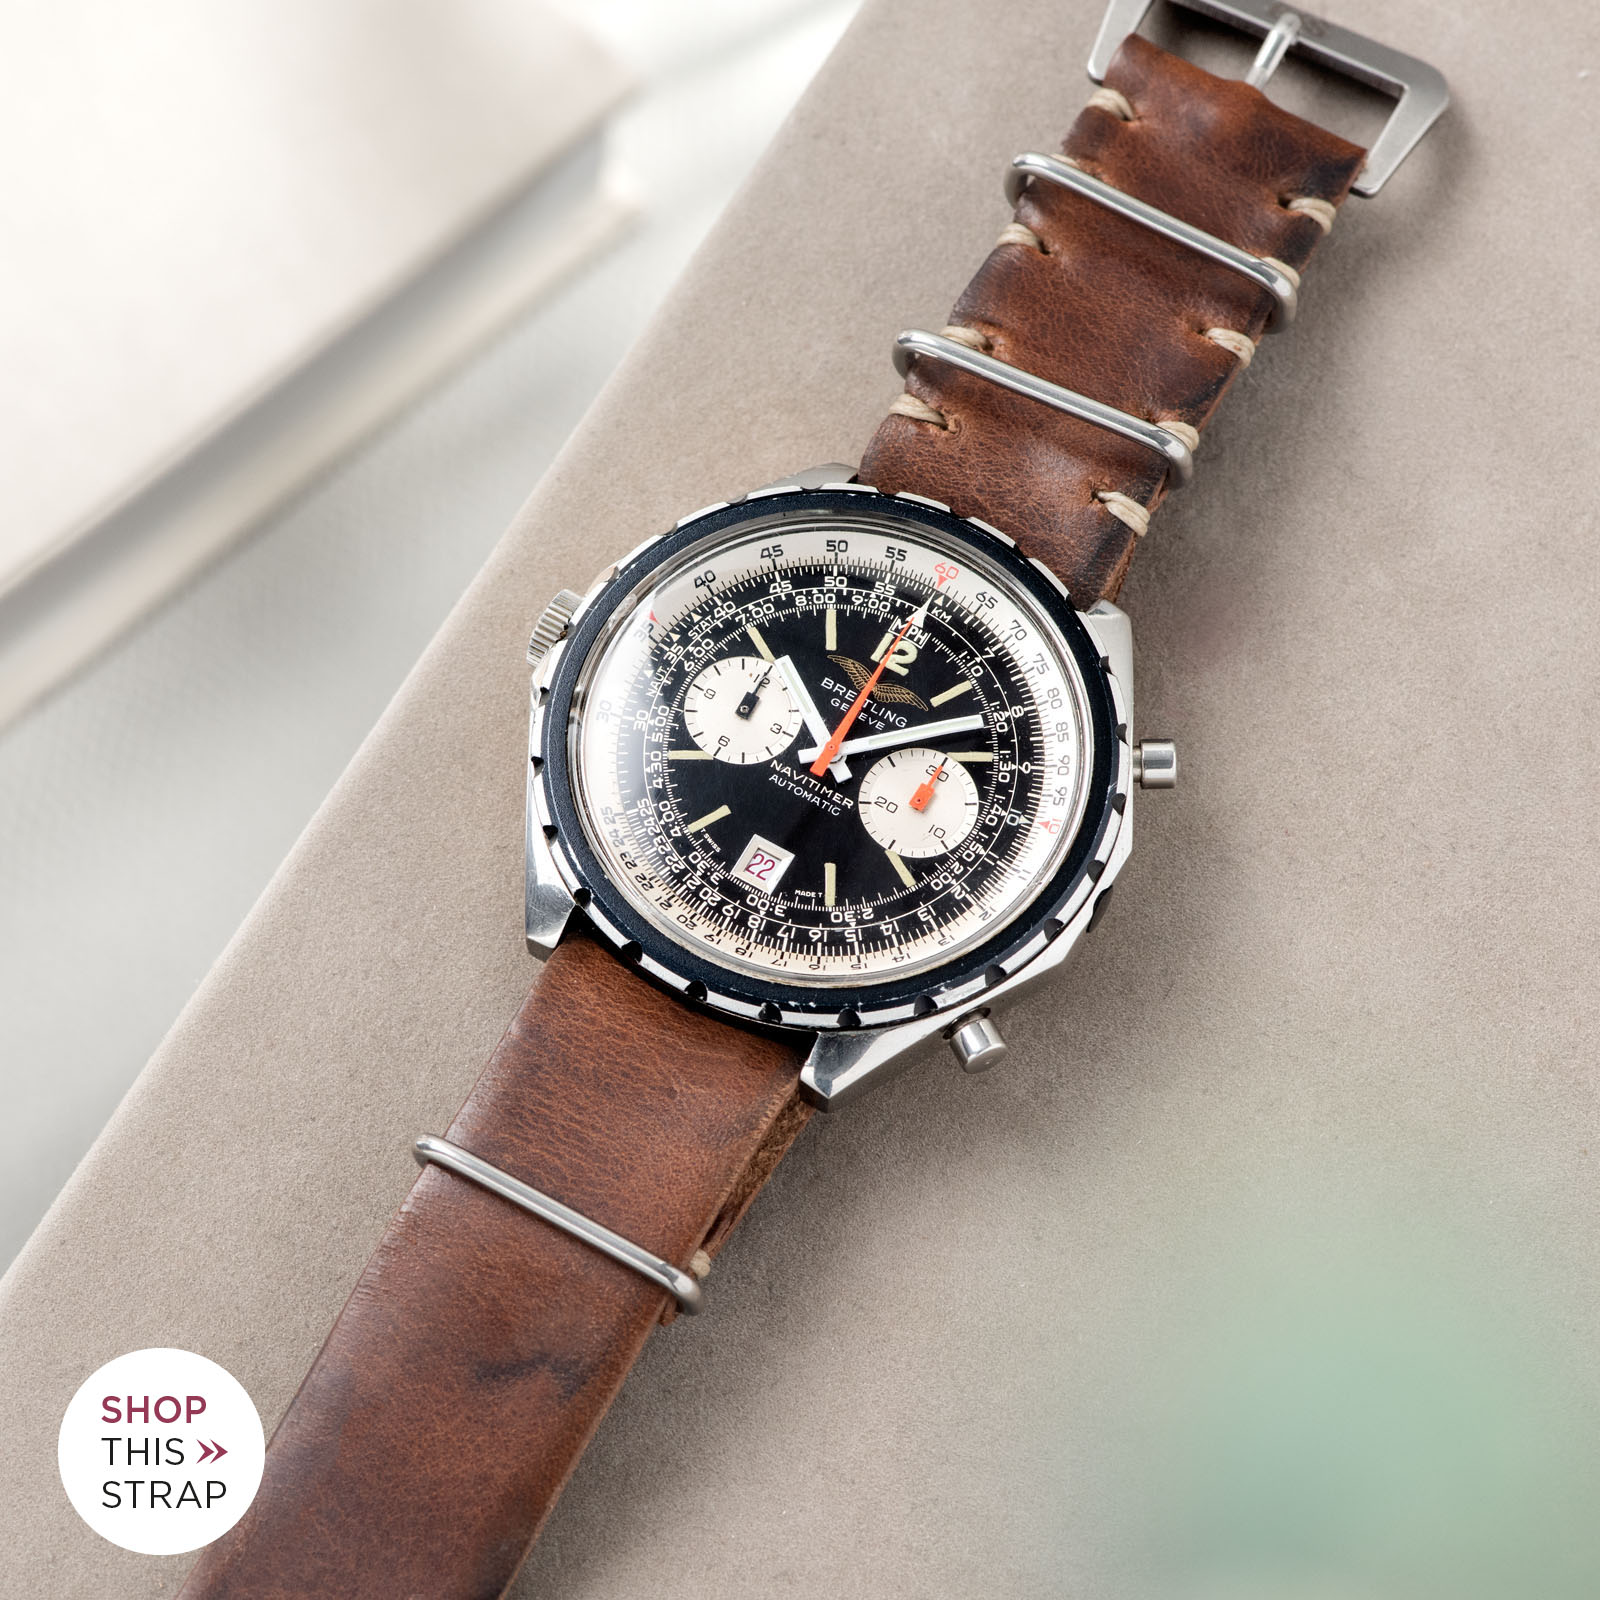 Bulang and Sons_Strapguide_Breitling Navitimer ref issued to iraqi air force ref 1806_Siena Brown Nato Leather Watch Strap_001